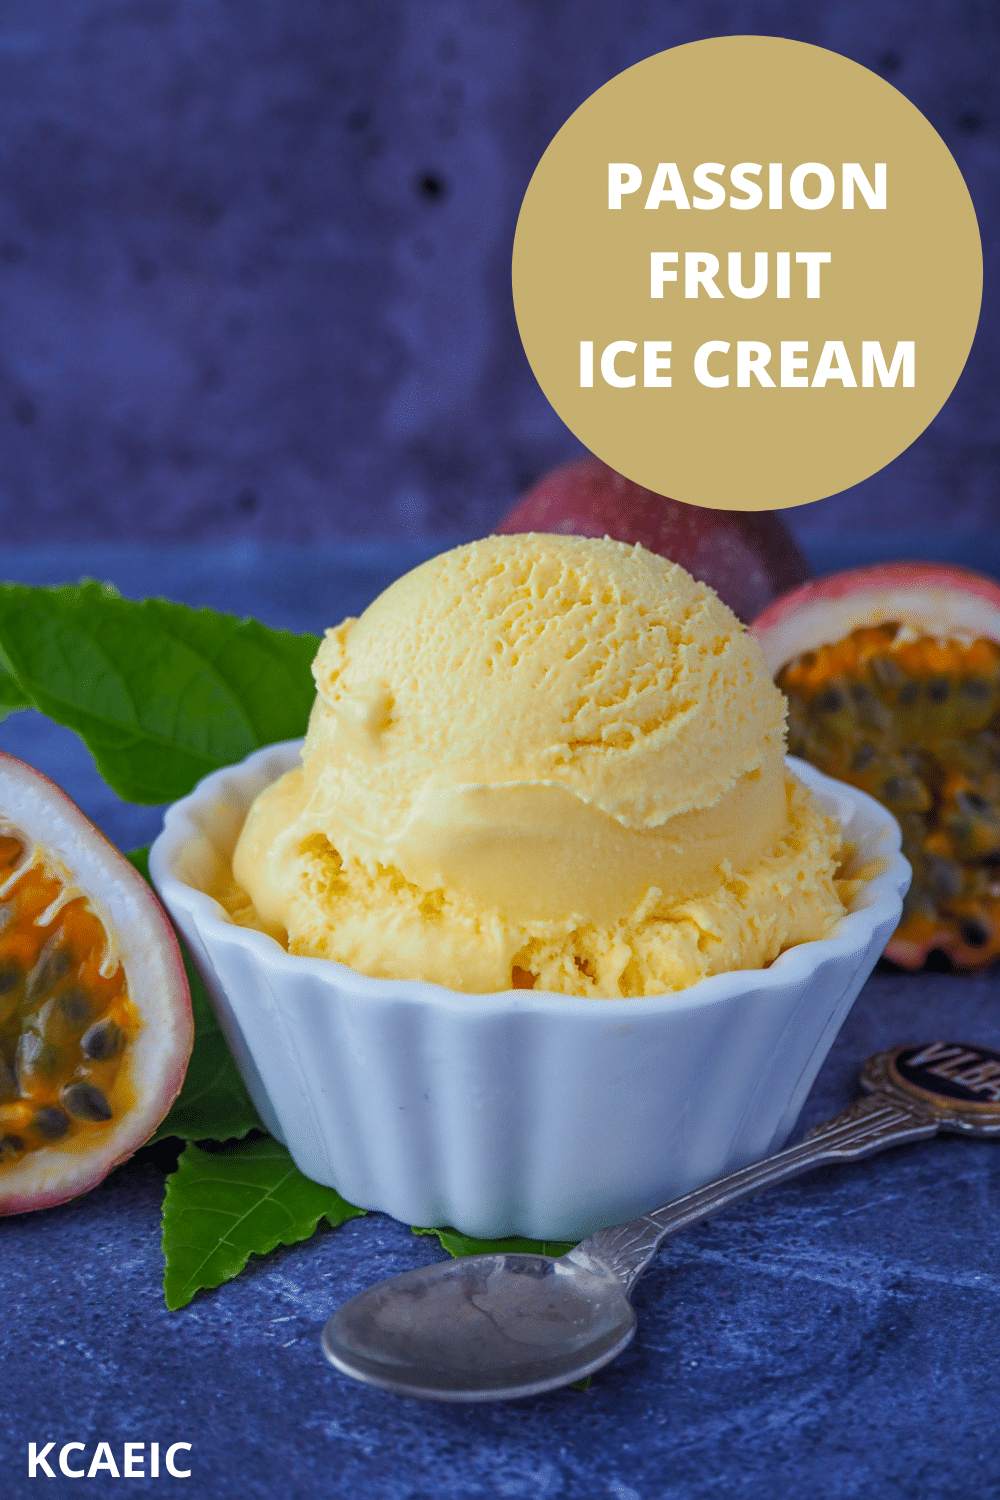 Scoop of passion fruit ice cream with fresh passion fruit and passion fruit leaves and a vintage spoon, with text over lay passion fruit ice cream, KCAEIC.